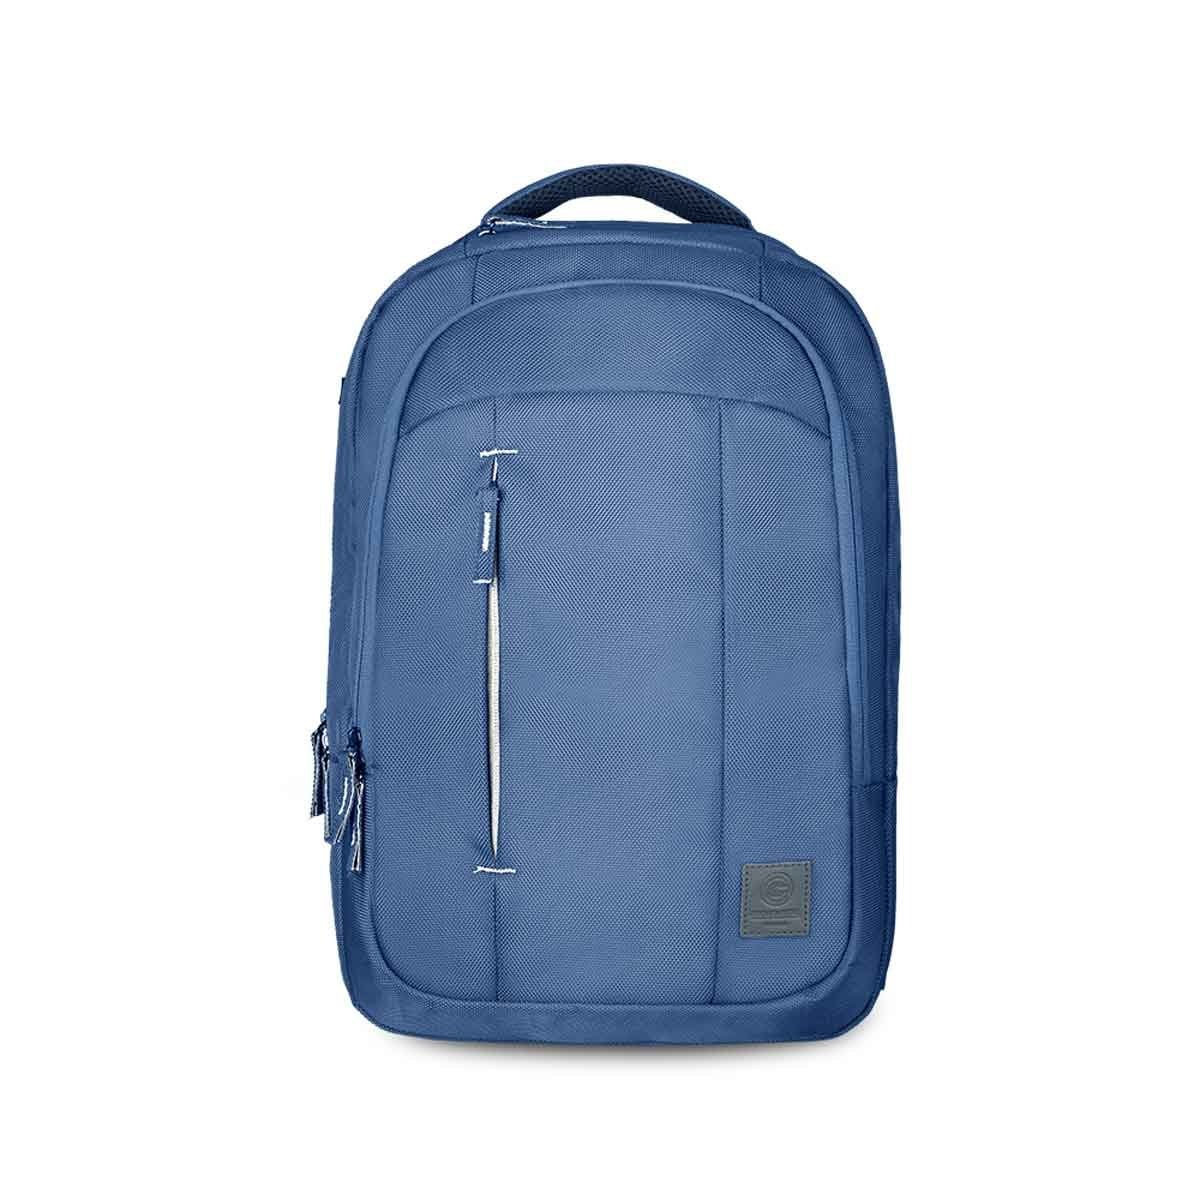 "Mochila Portalaptop 15.6"" Zilker Cool Capital"